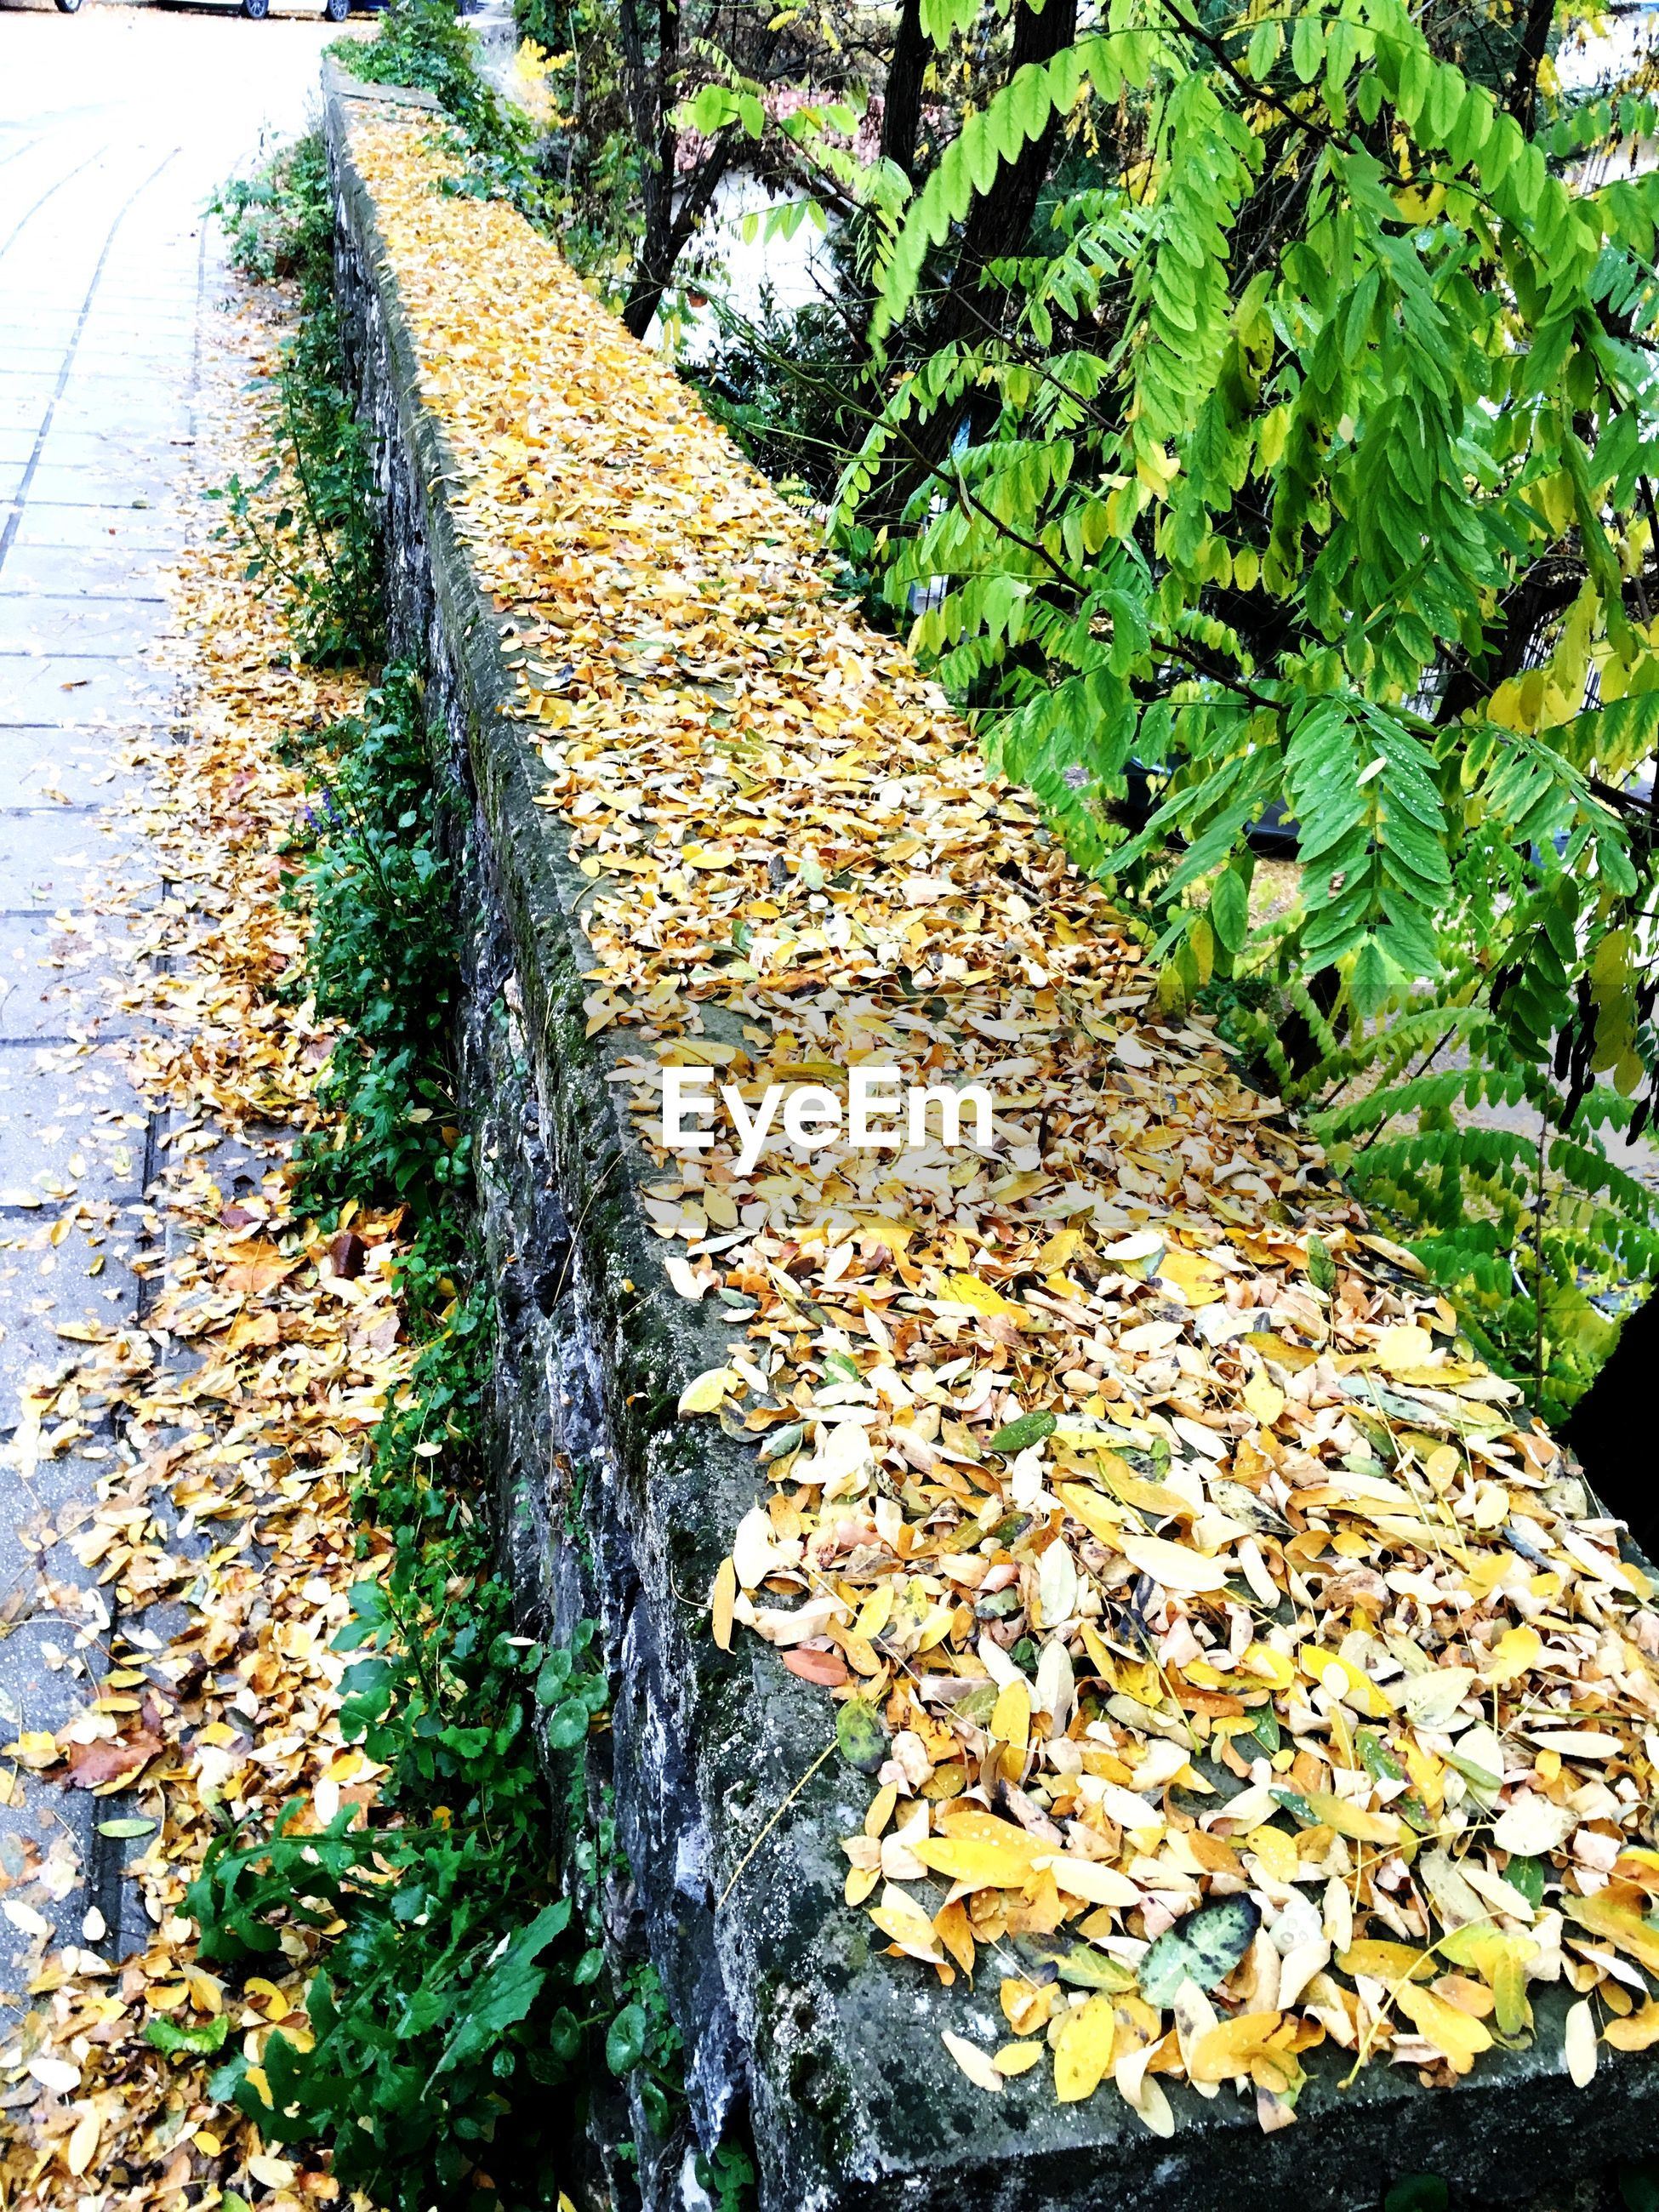 leaf, autumn, change, tree, nature, season, growth, tranquility, the way forward, leaves, fallen, beauty in nature, day, green color, plant, footpath, diminishing perspective, outdoors, tranquil scene, no people